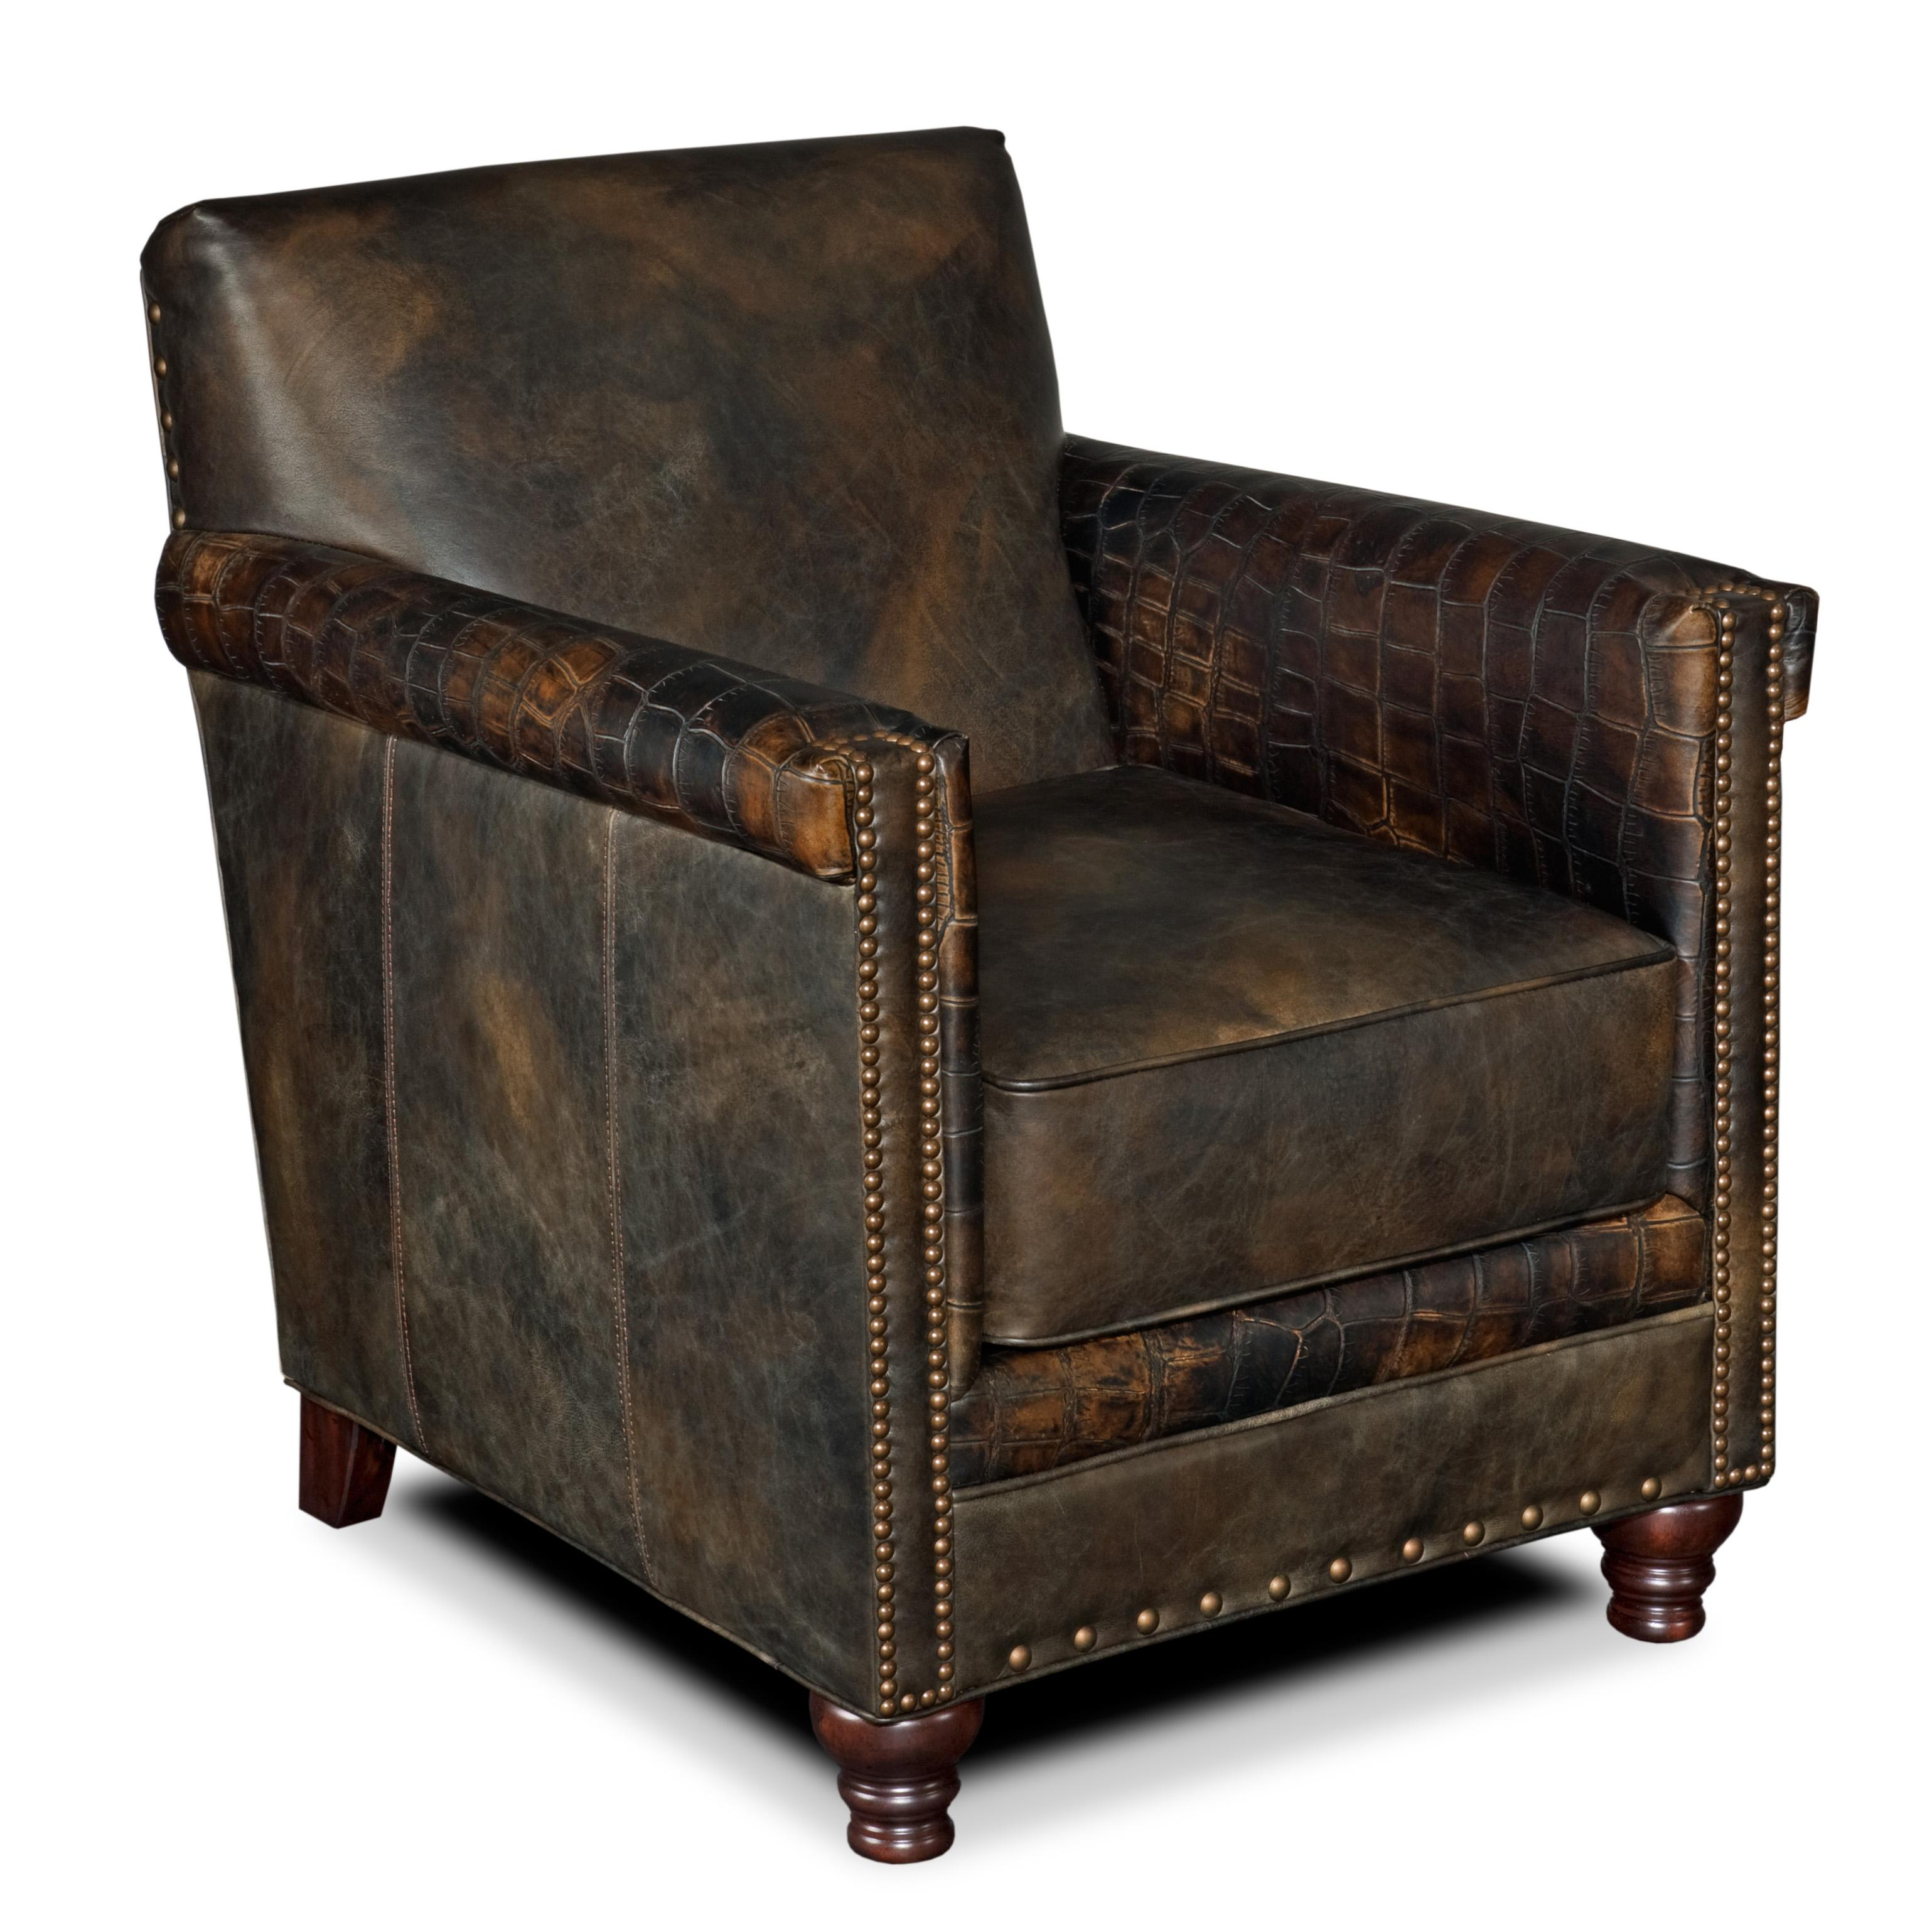 Hooker Furniture Club Chairs Potter Upholstered Club Chair - Item Number CC719-089  sc 1 st  Dunk u0026 Bright Furniture & Hooker Furniture Club Chairs Potter Leather Club Chair with ... islam-shia.org